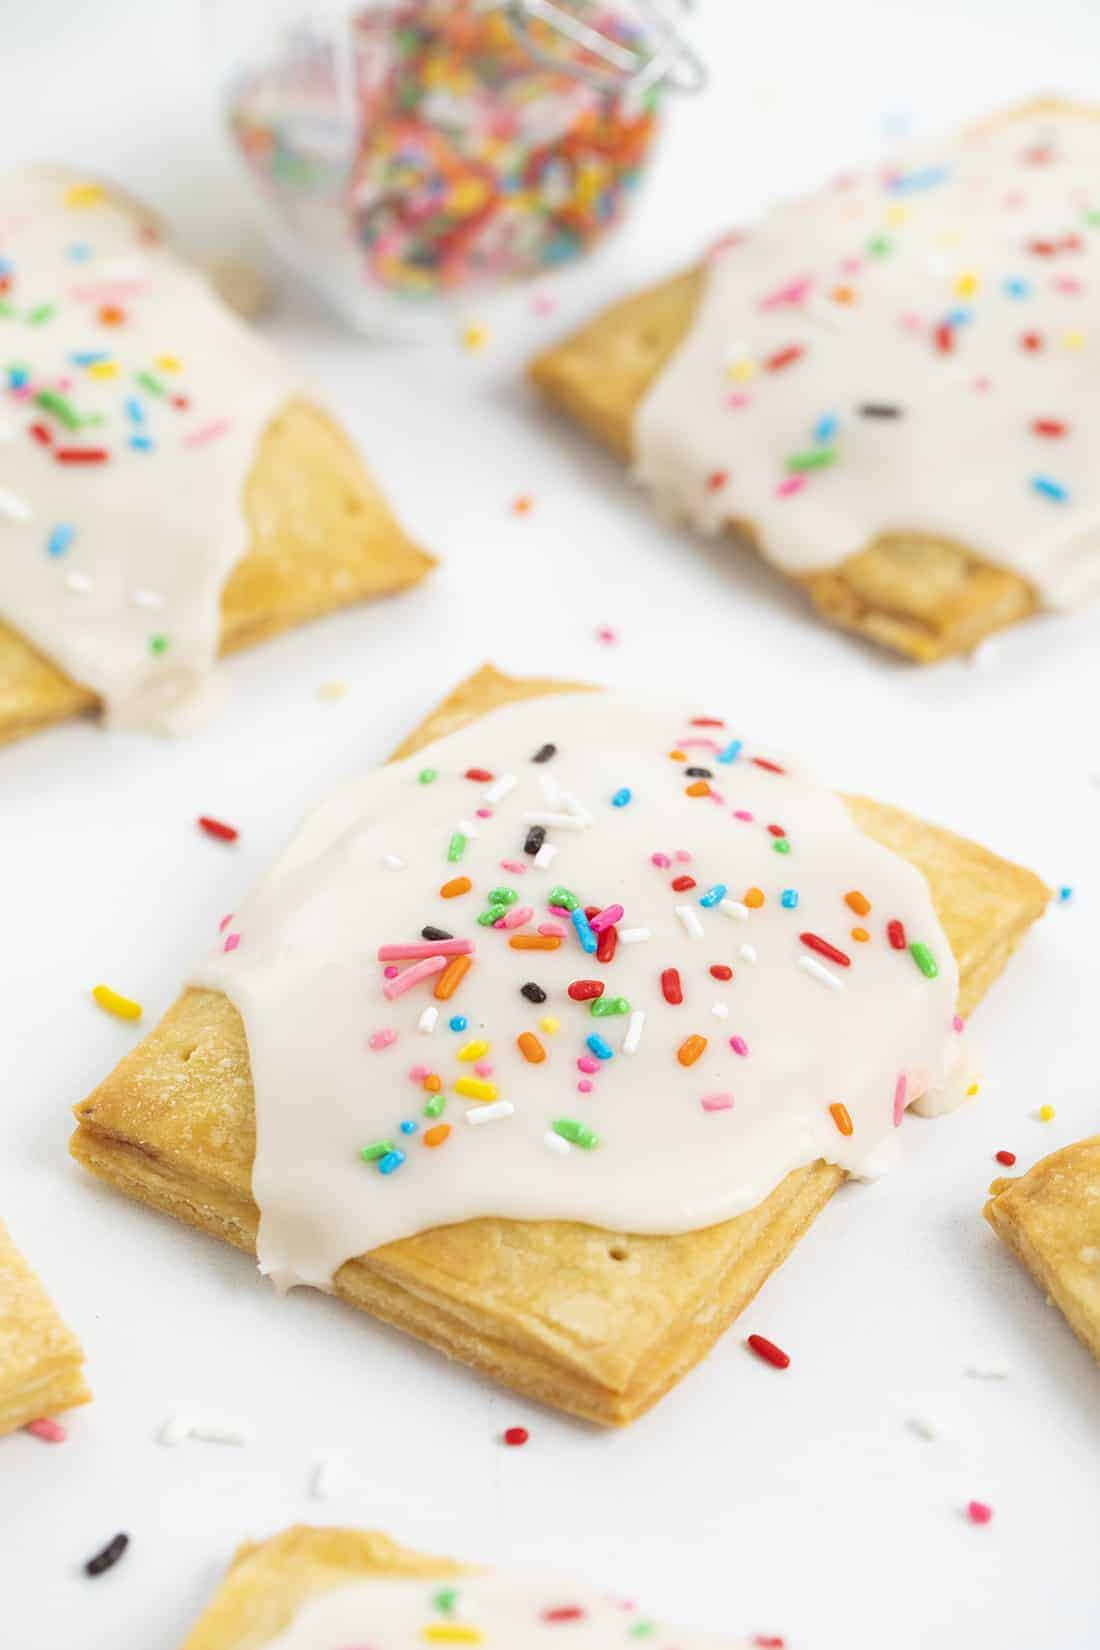 Frosted Strawberry Homemade Pop Tarts with Sprinkles